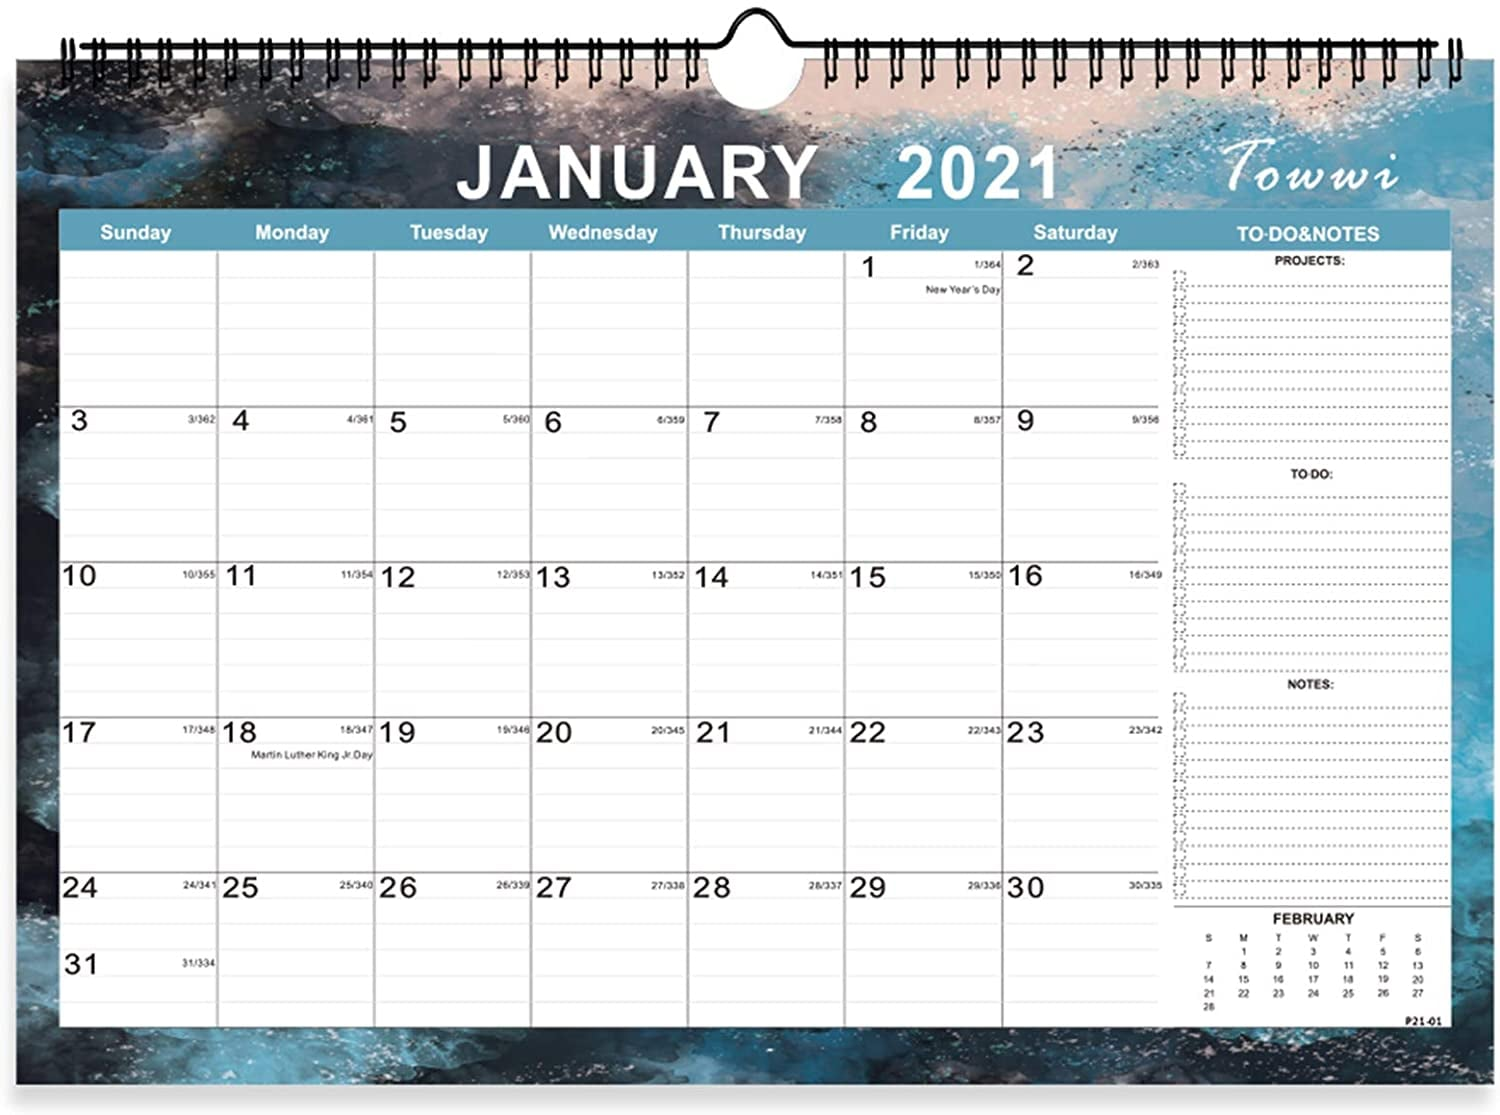 Fit Academic Calendar 2022.Towwi Monthly Academic Wall Calendar 2021 2022 20 Unique Calendars That Will Keep You On Track For 2021 Popsugar Smart Living Photo 20